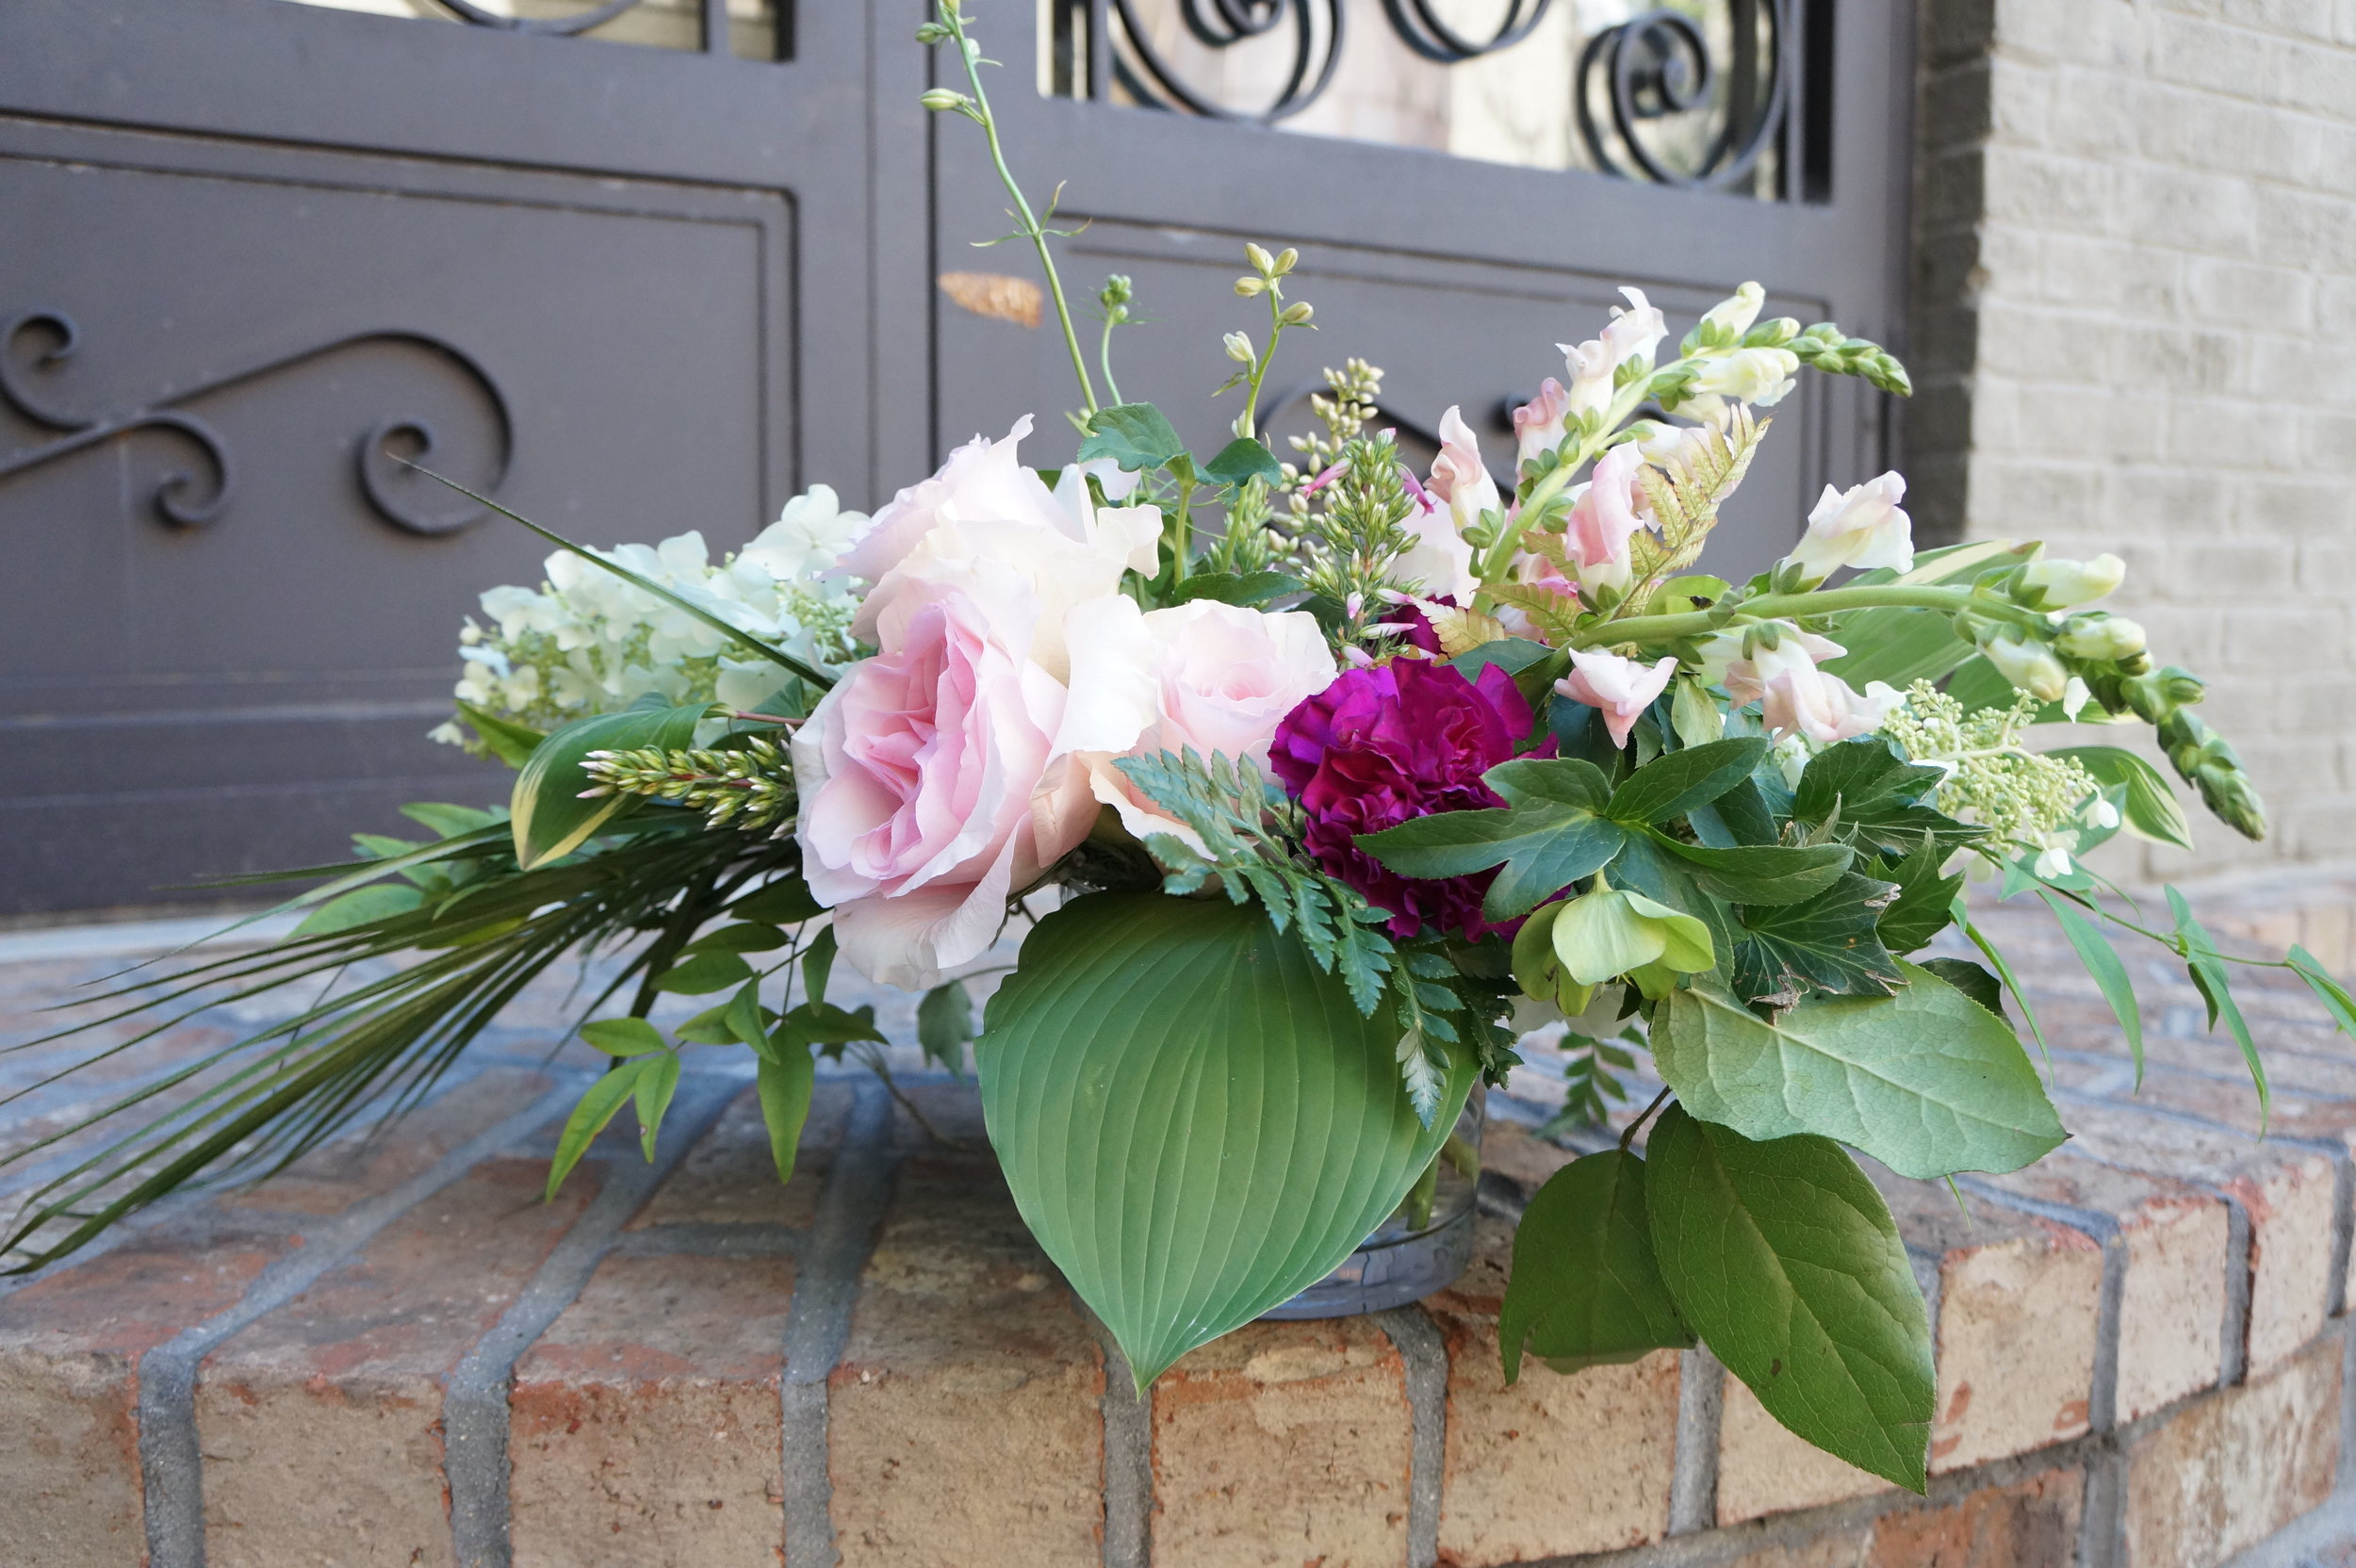 Andrea Fenise Memphis Fashion Blogger shares how to make a diy floral arrangement